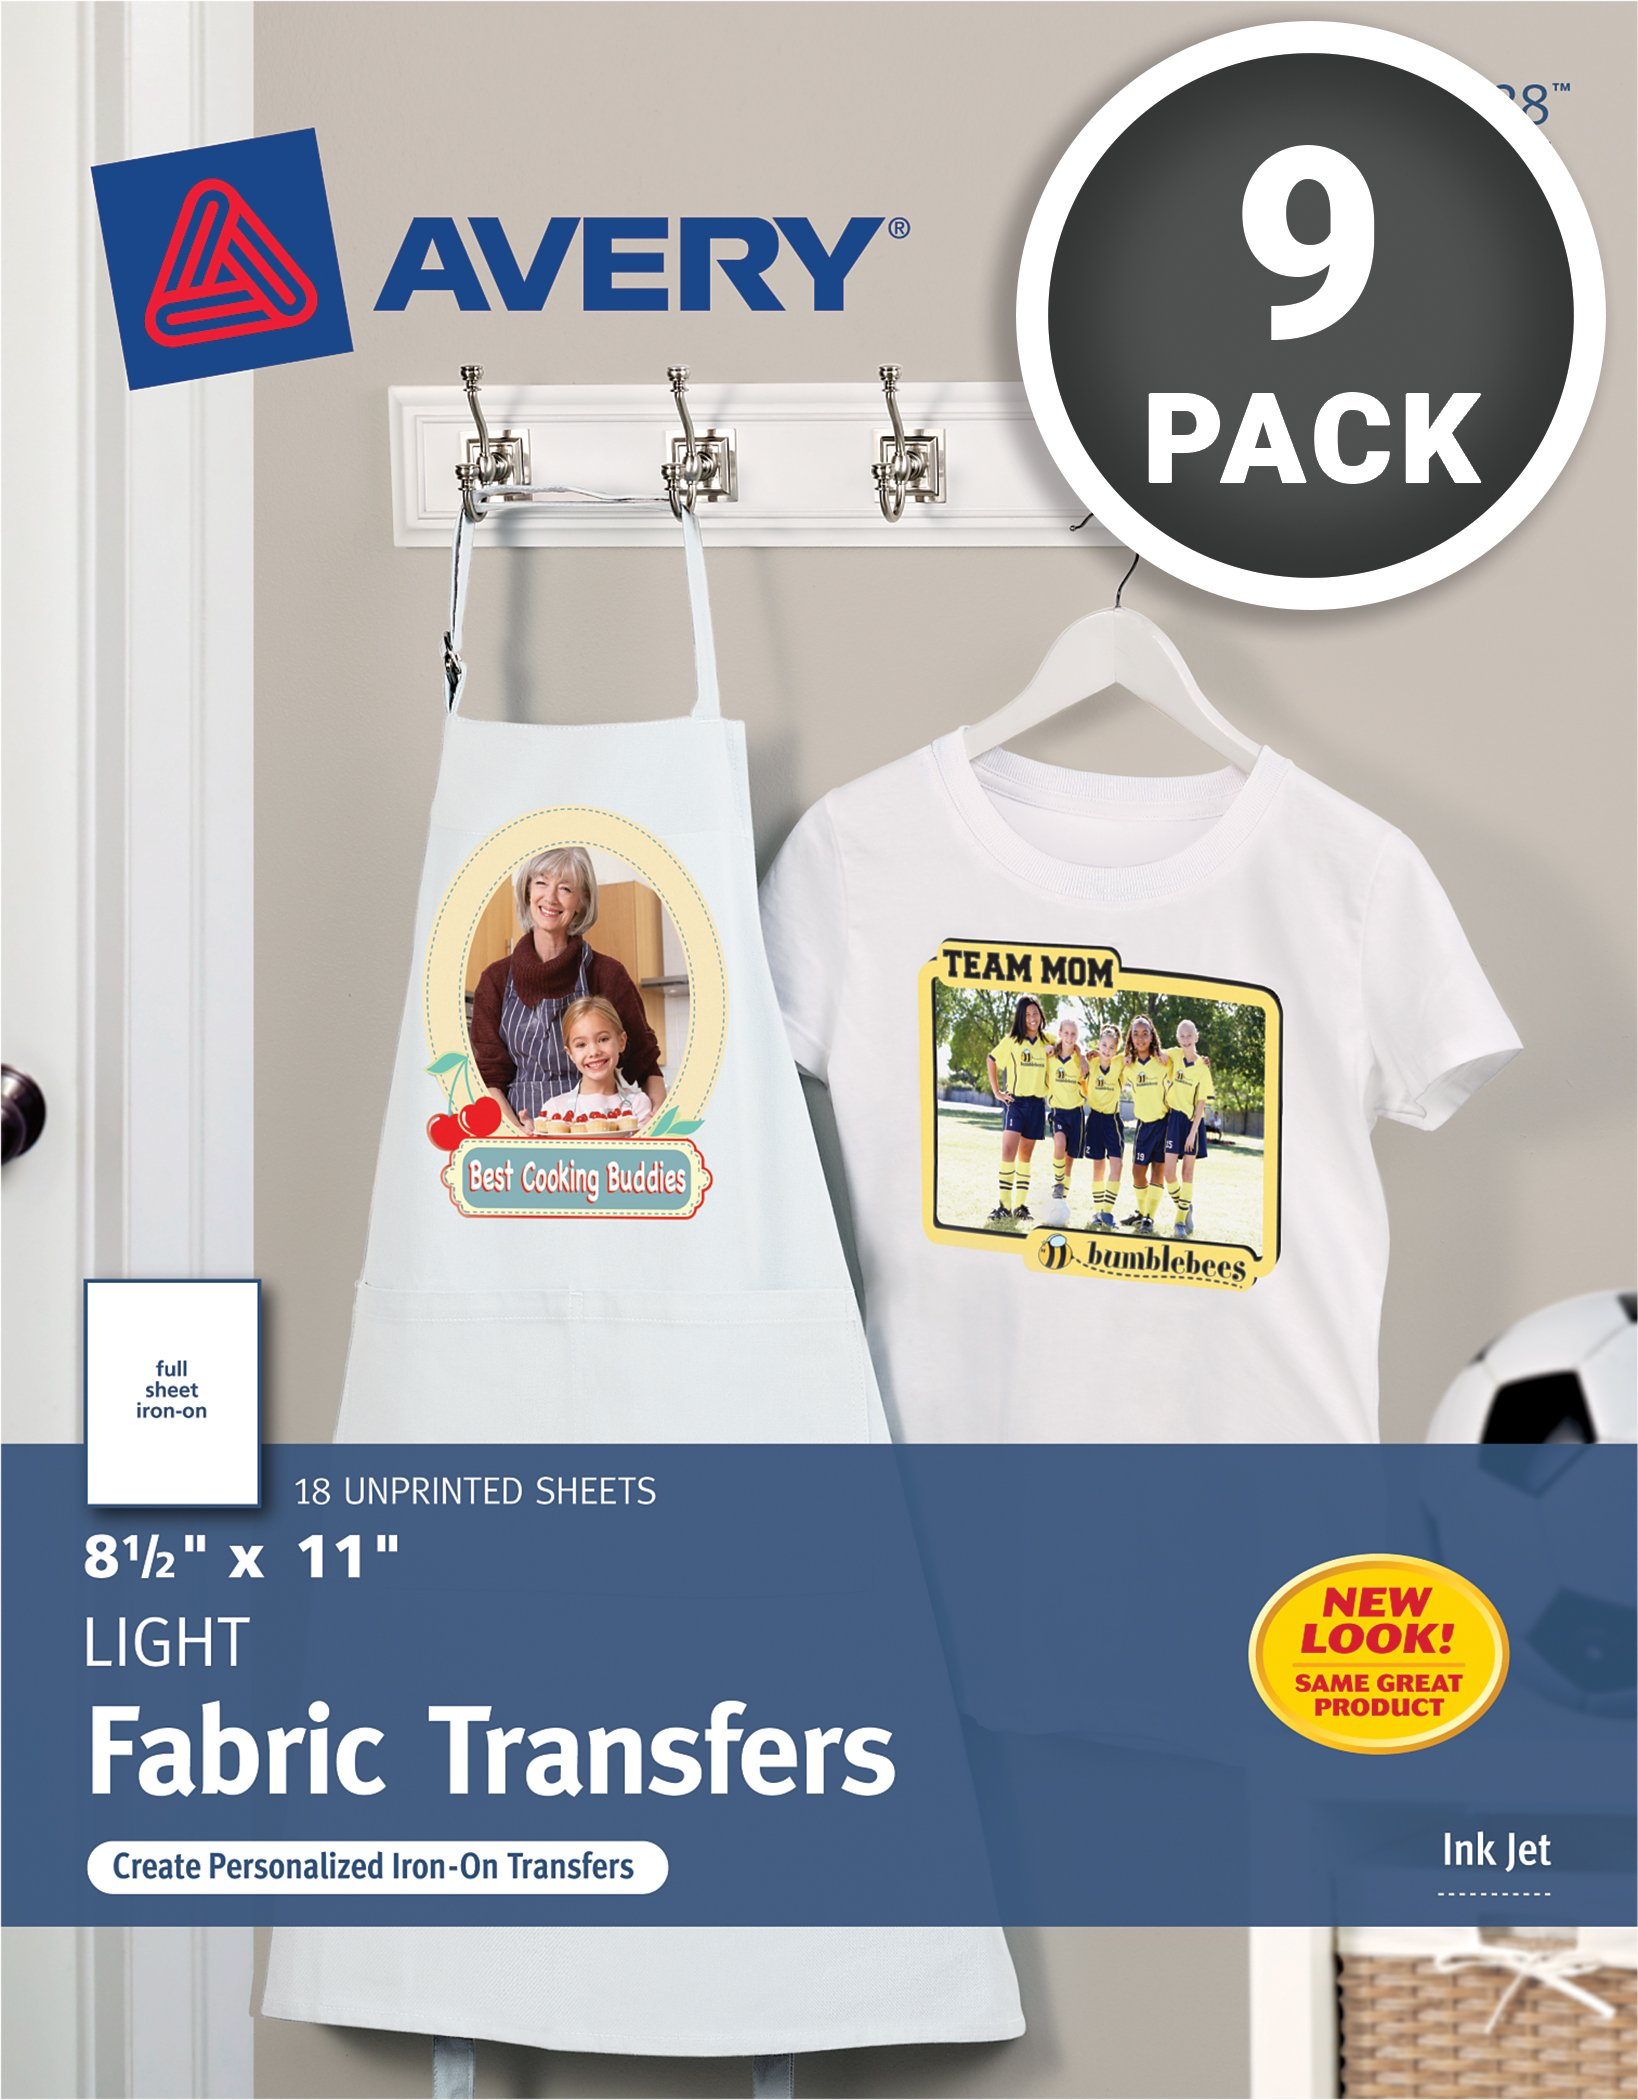 Avery T-shirt Transfers for Inkjet Printers, light-colored, 8.5 x 11'', Pack of 9 (8938) by Avery